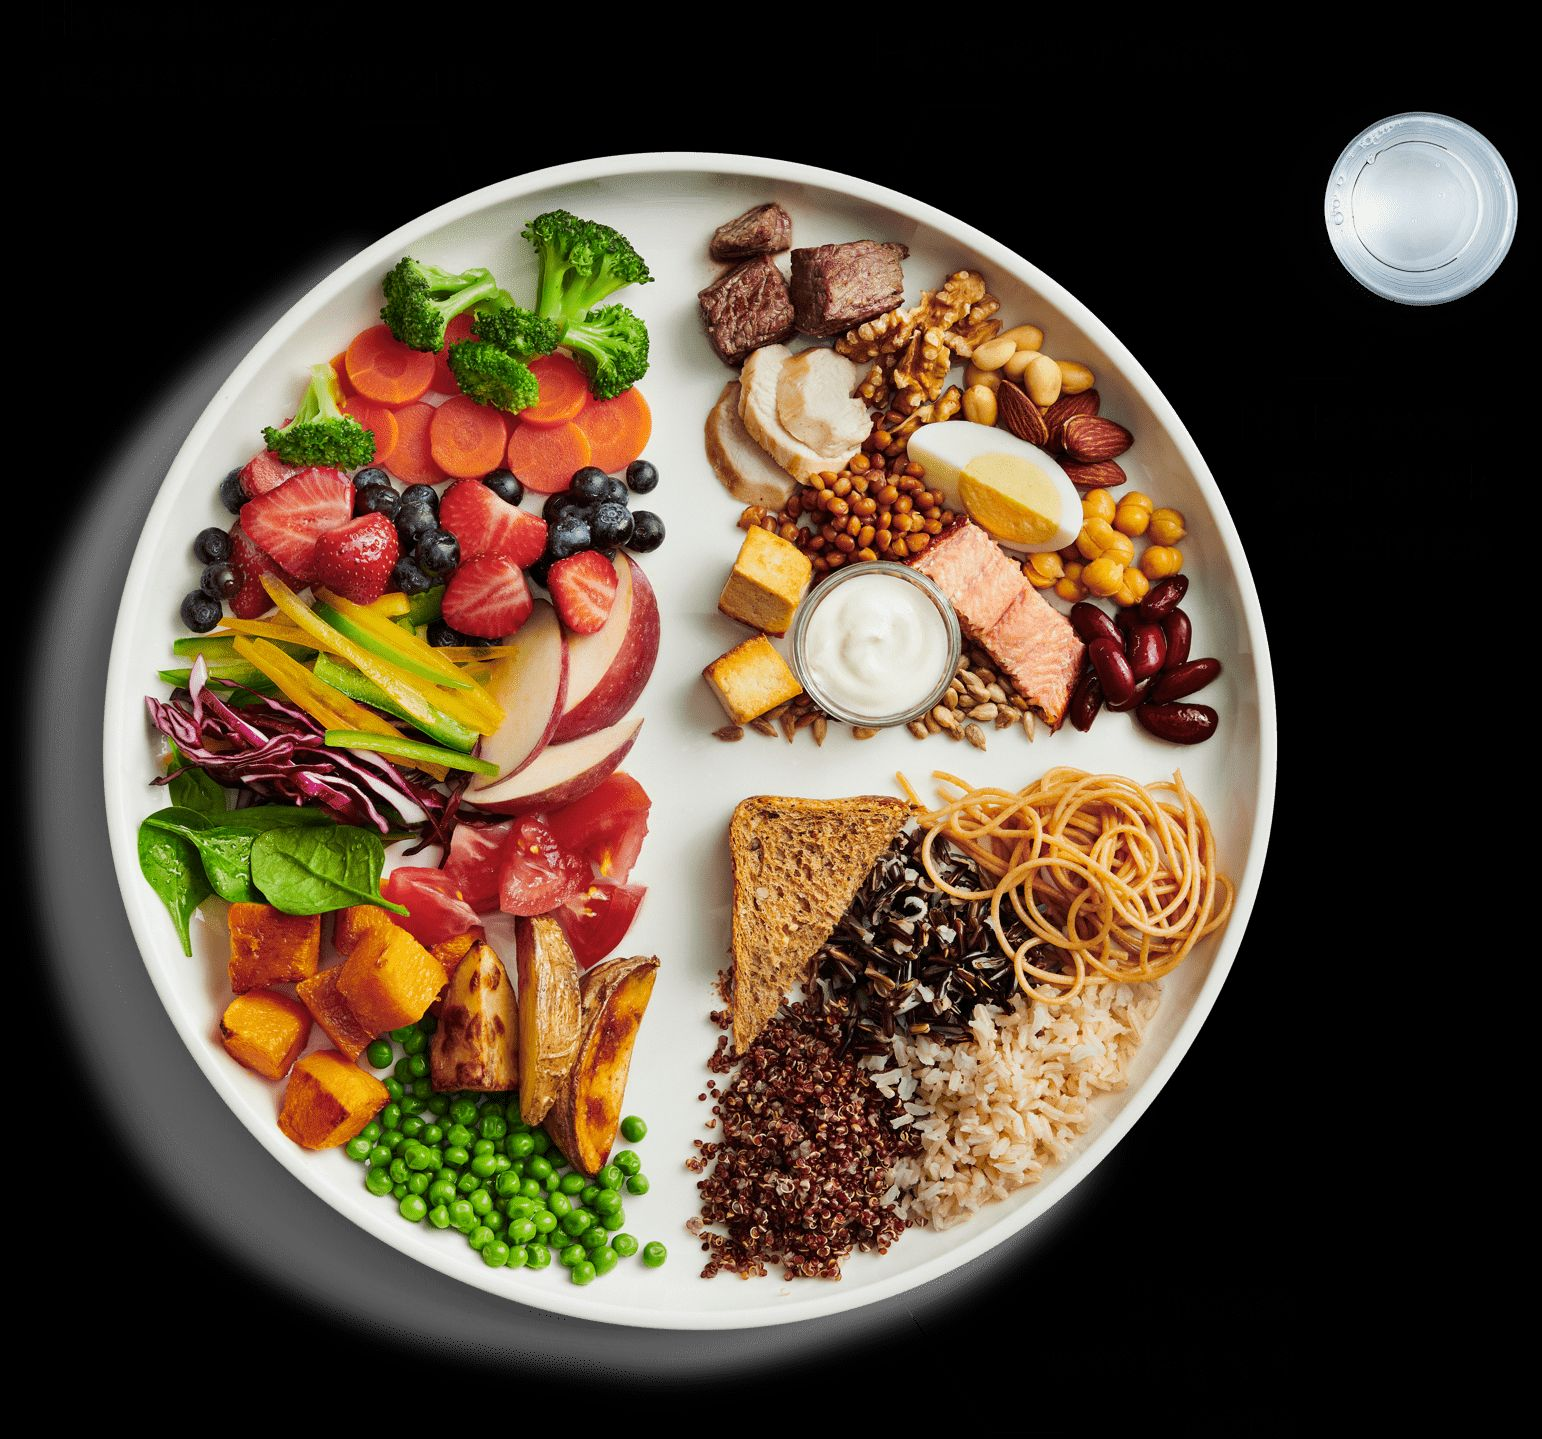 Canada's 'good news' food guide